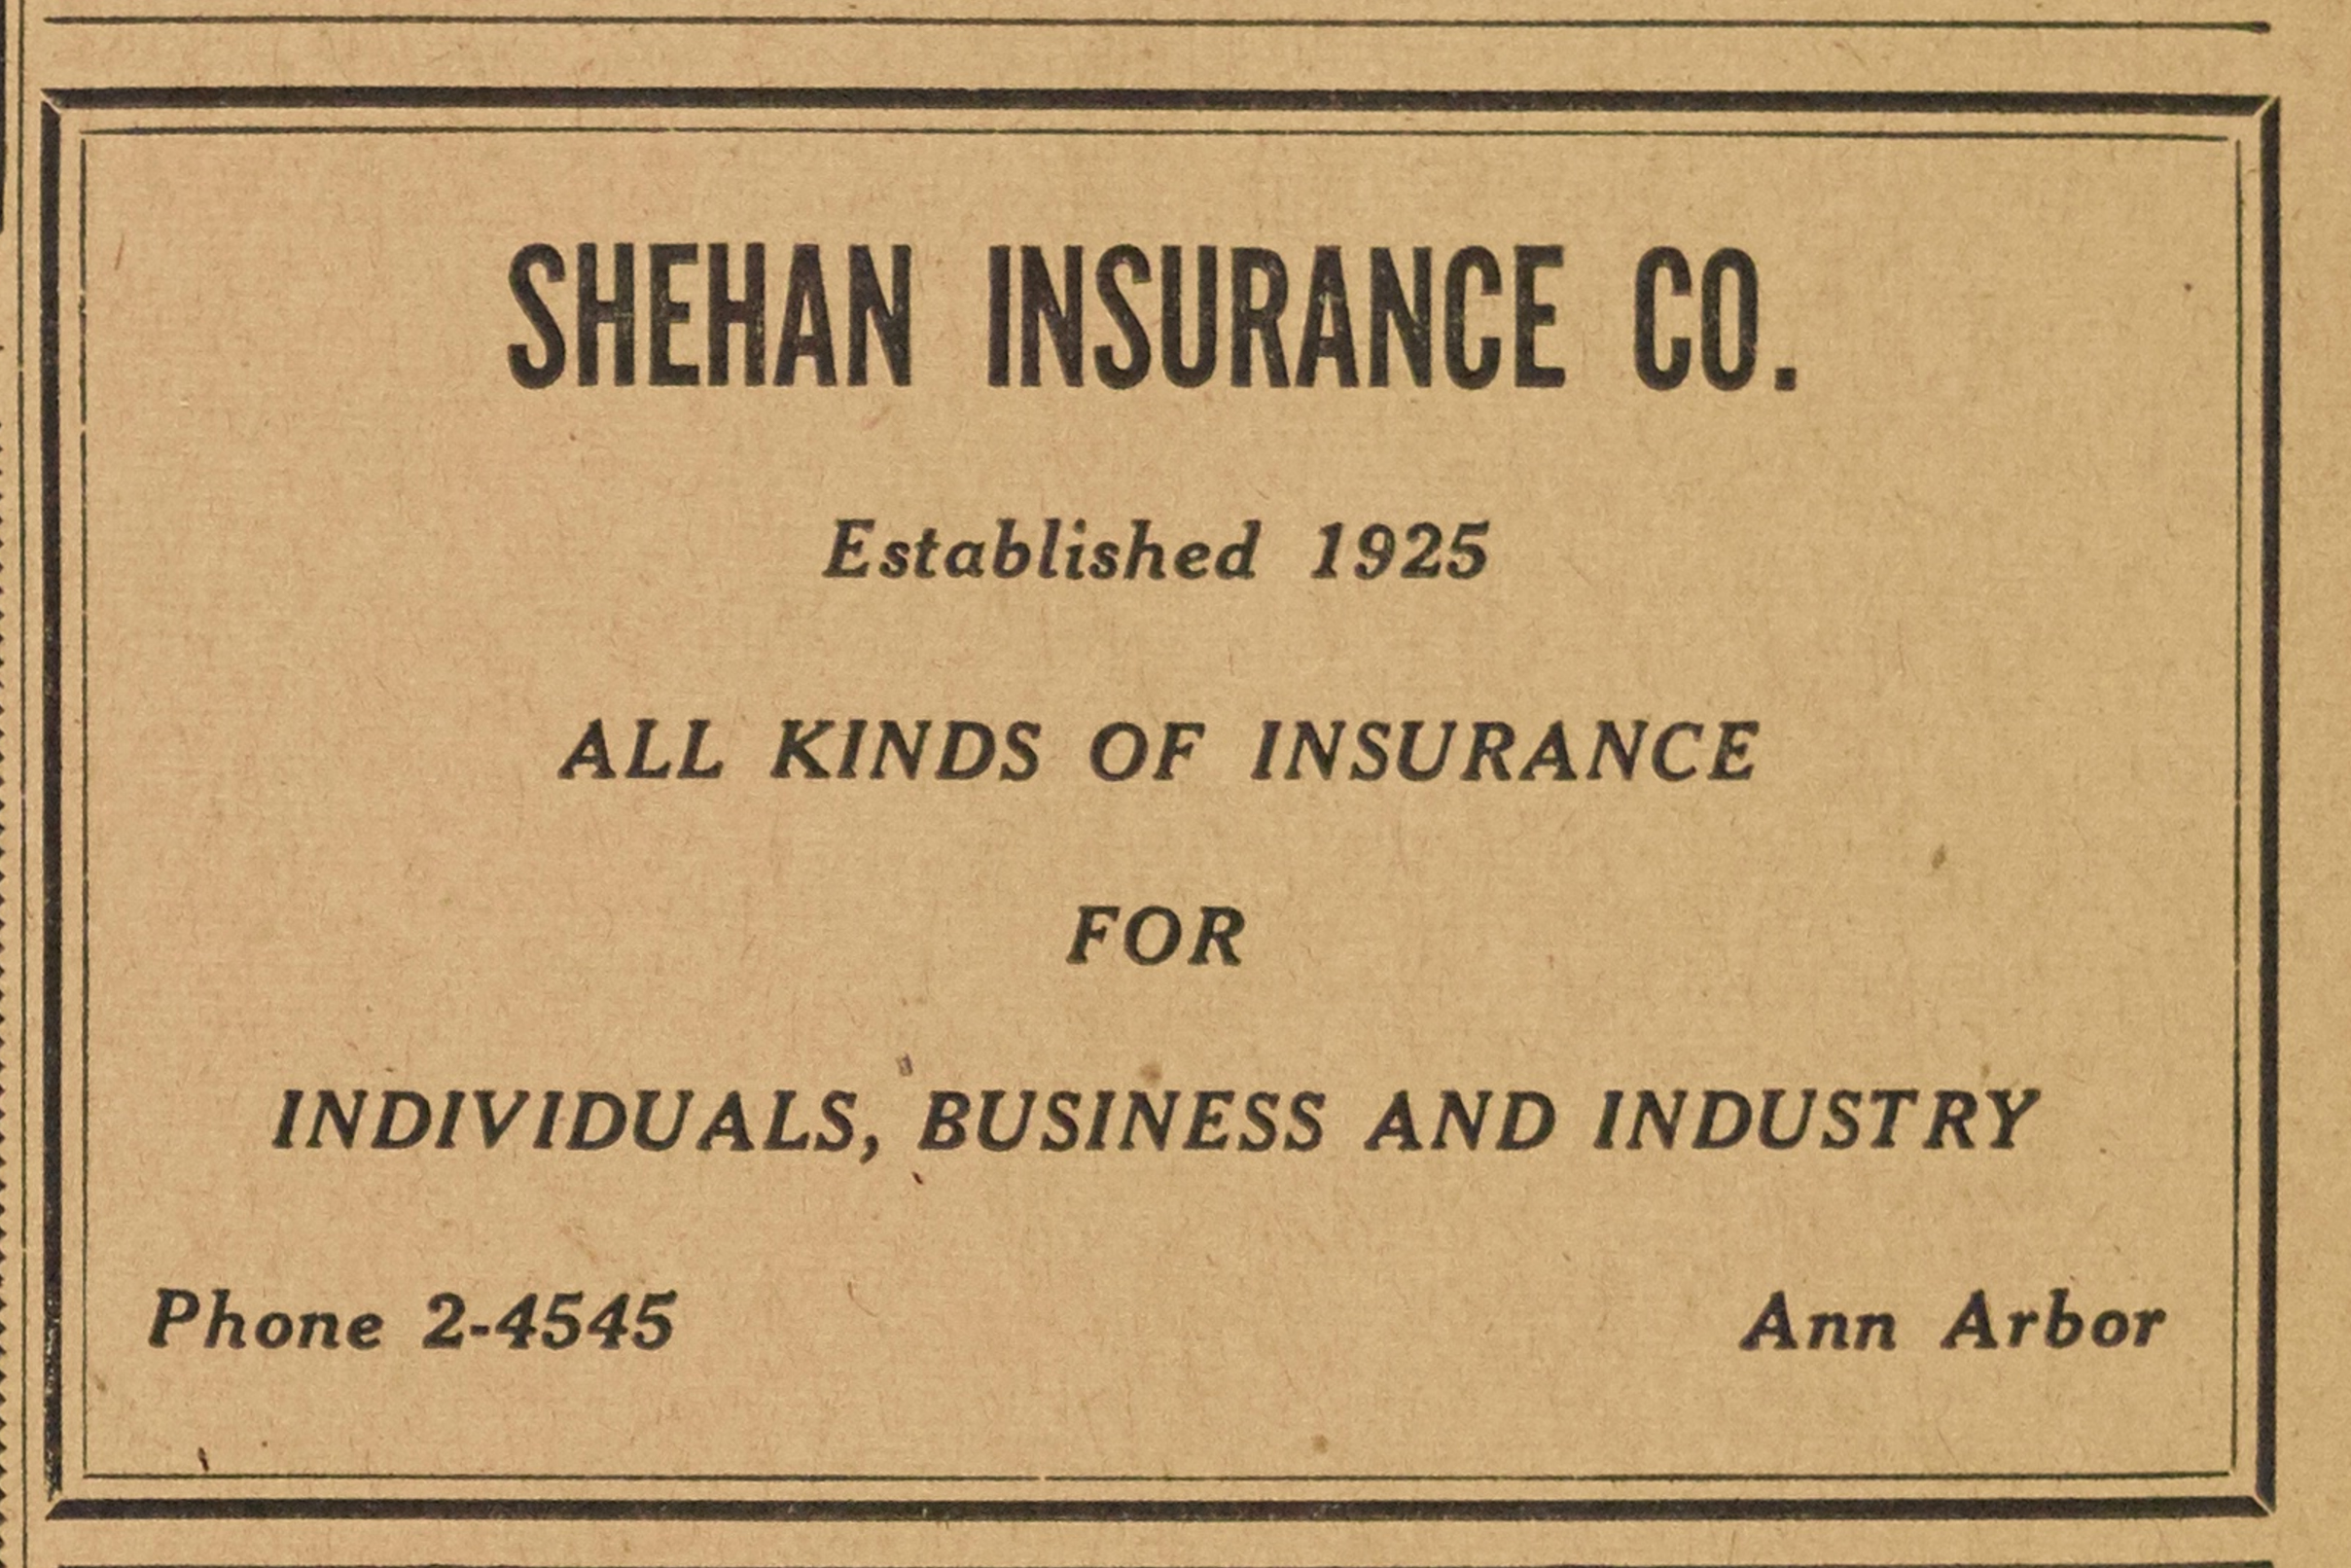 Shehan Insurance Co. image